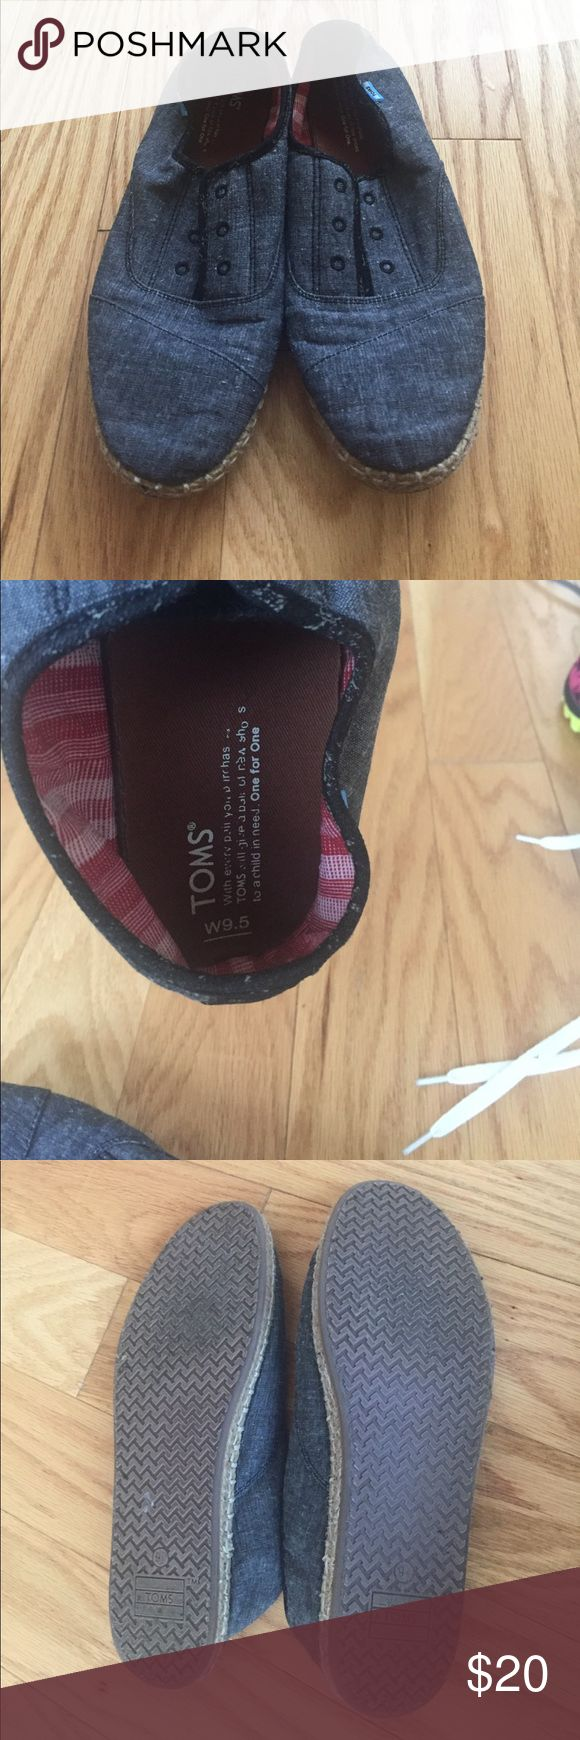 Toms slip on sneakers Linen slip on with jute border. Blue/ denim look but is linen material. Extremely comfortable. Barely worn. TOMS Shoes Sneakers